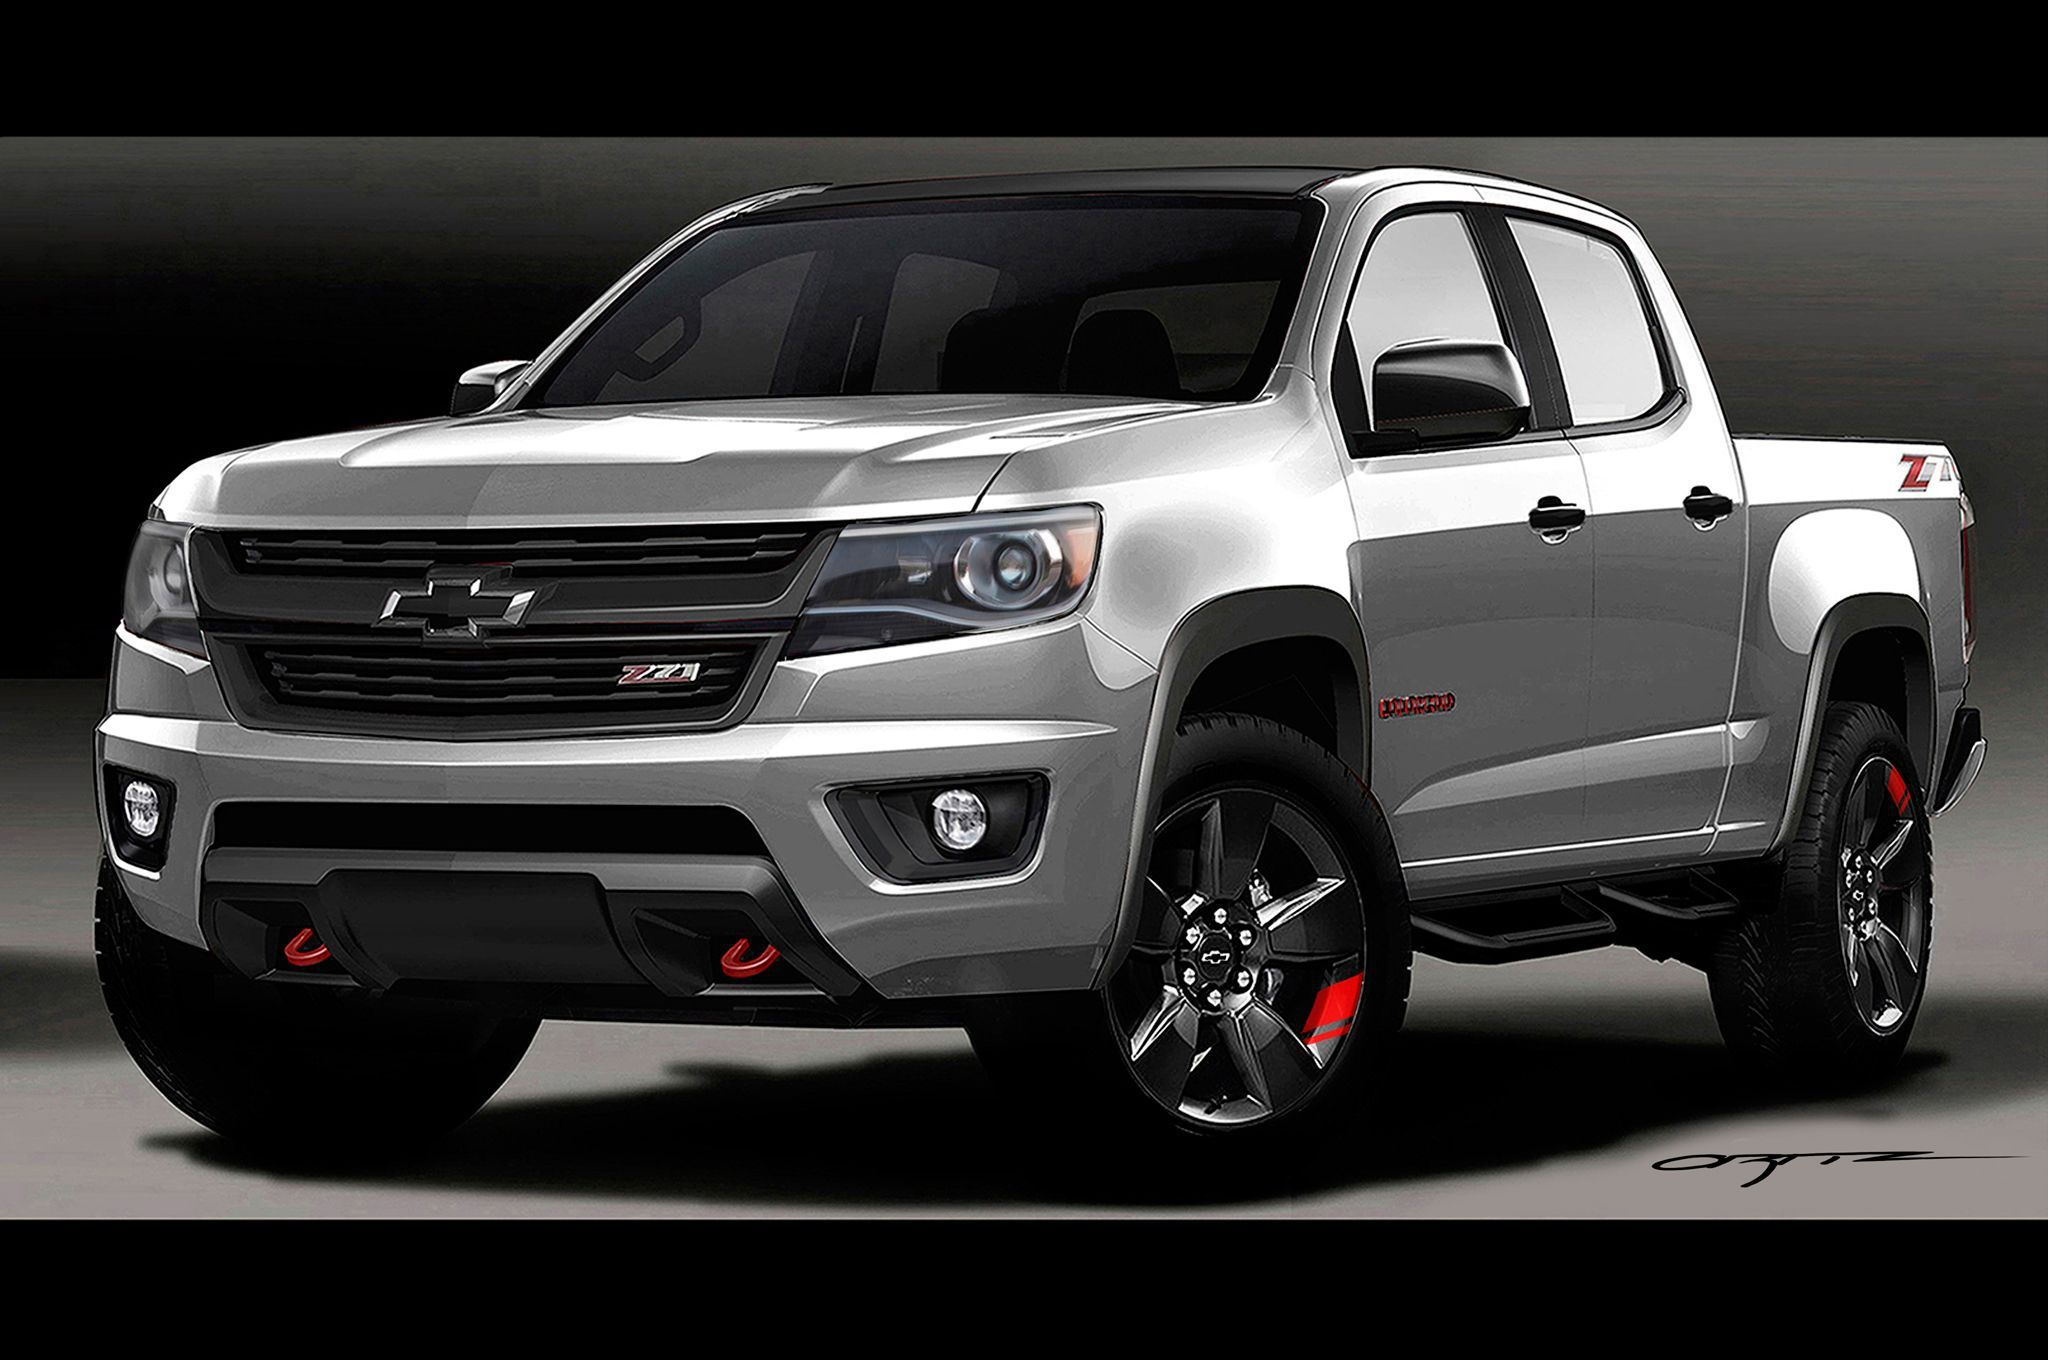 2020 Chevy Colorado Redesign, Release Date and Price Rumors - Car Rumor | Chevrolet | Chevrolet ...